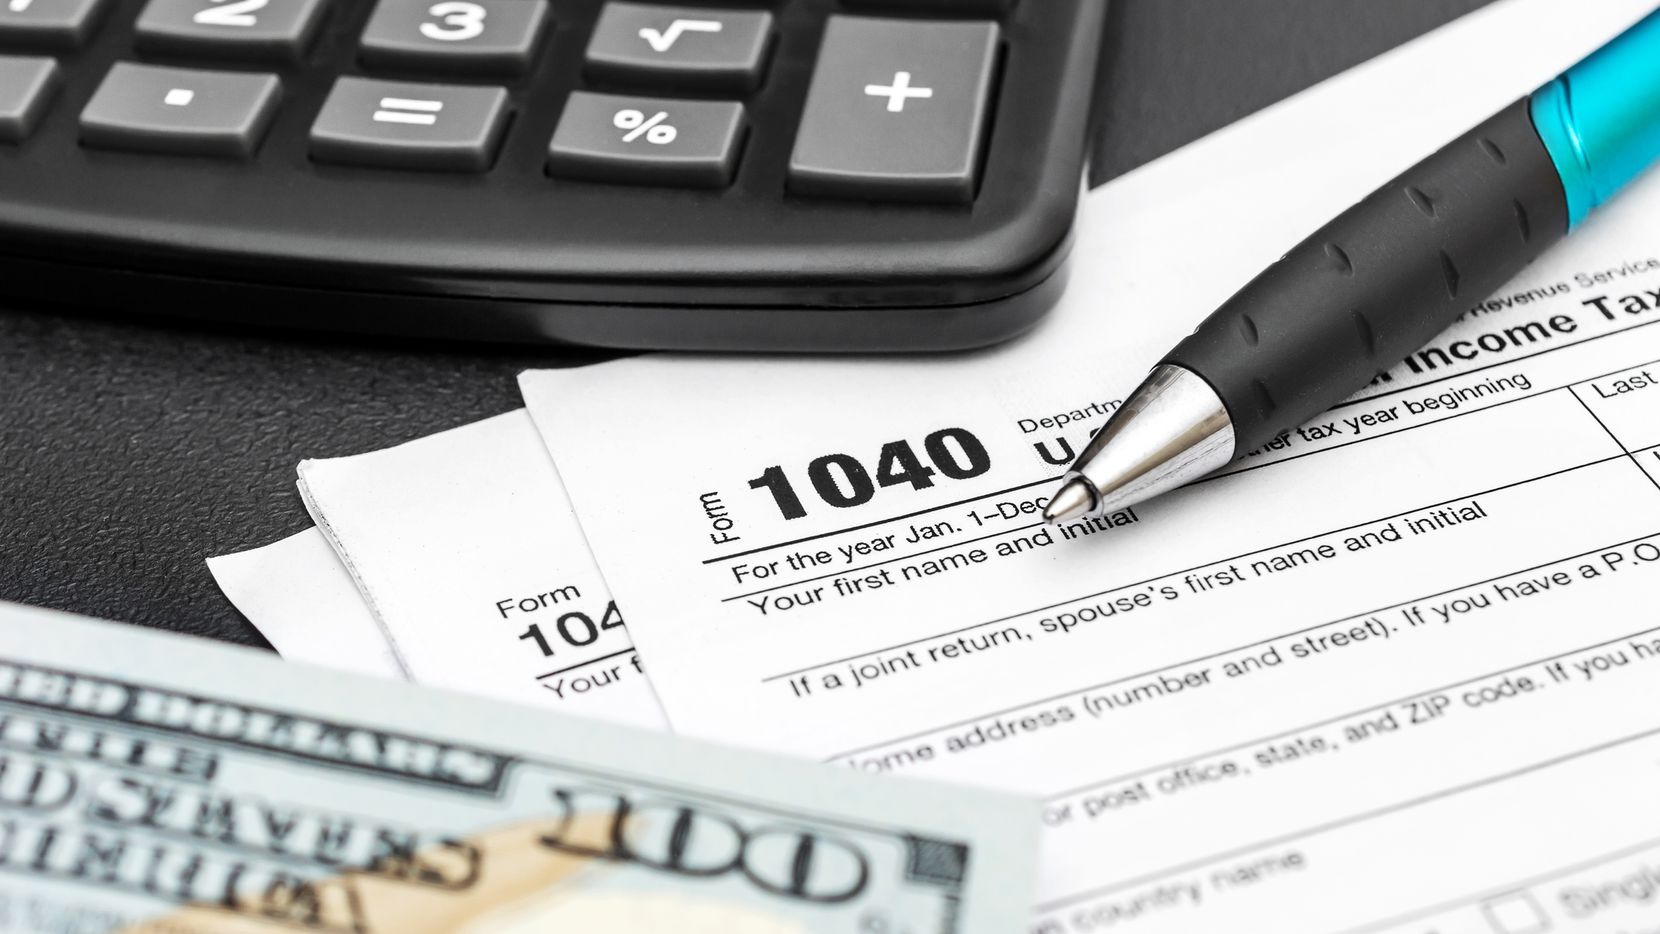 Experts say people should be aware of certain situations, including working in a different state or claiming a stimulus payment, that could affect their tax liability.